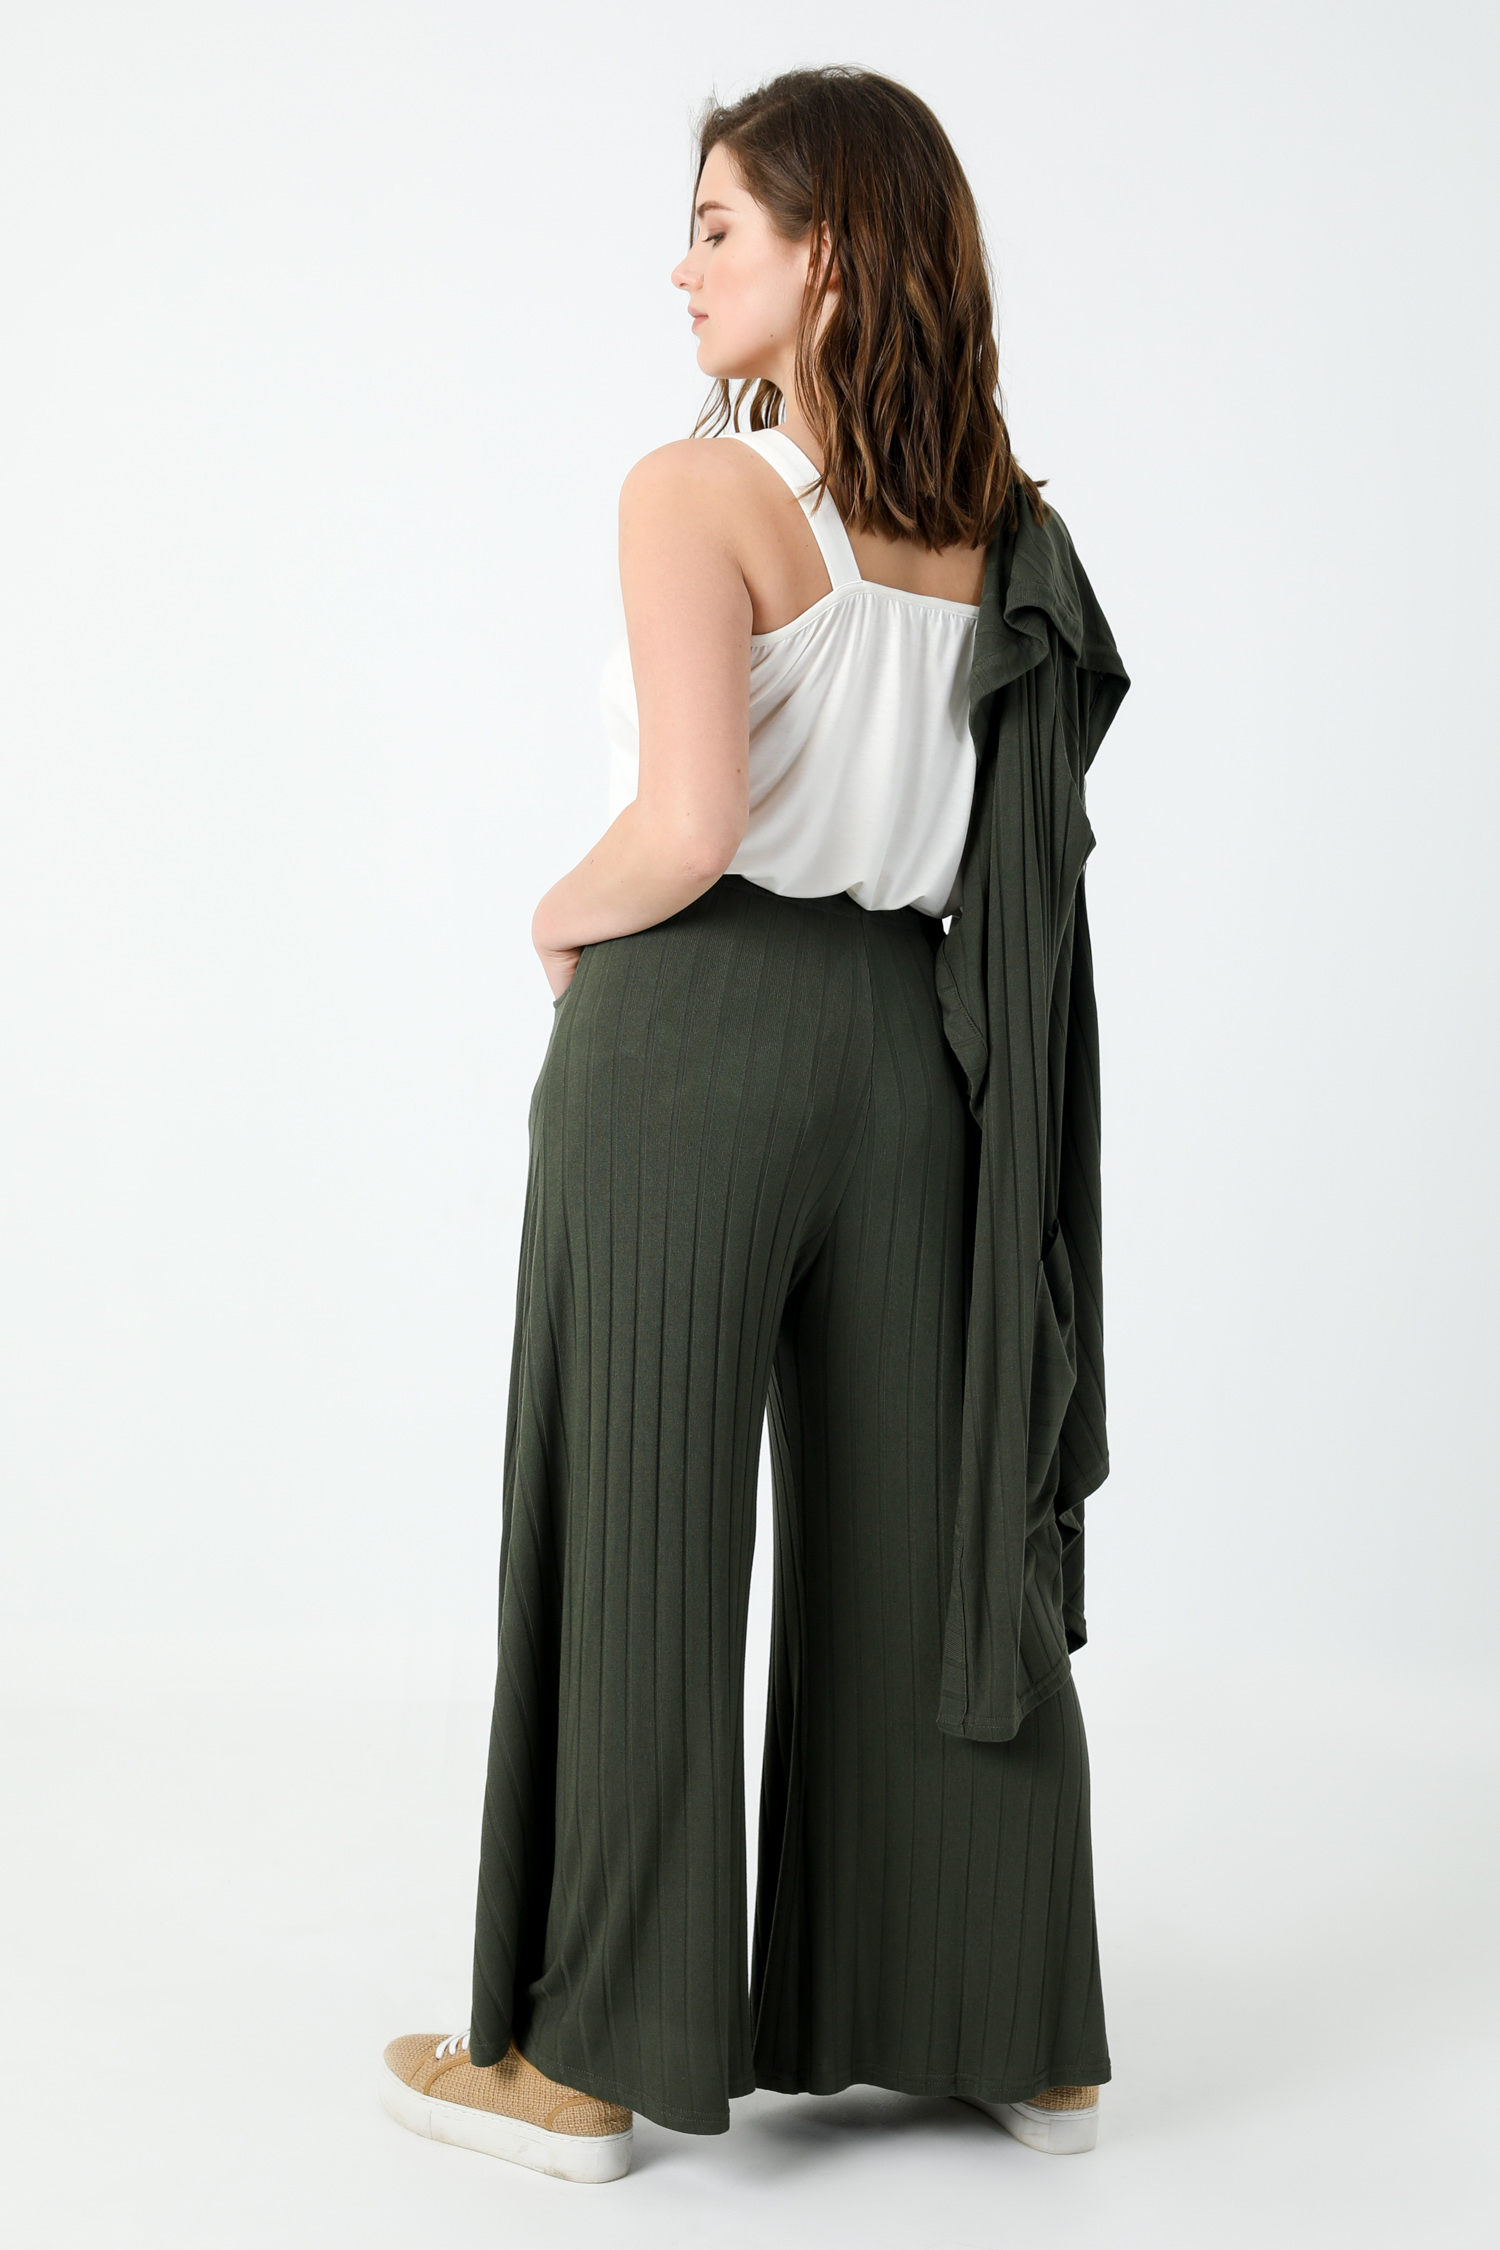 Panty skirt style pants in rib (expedition 15/20 February)